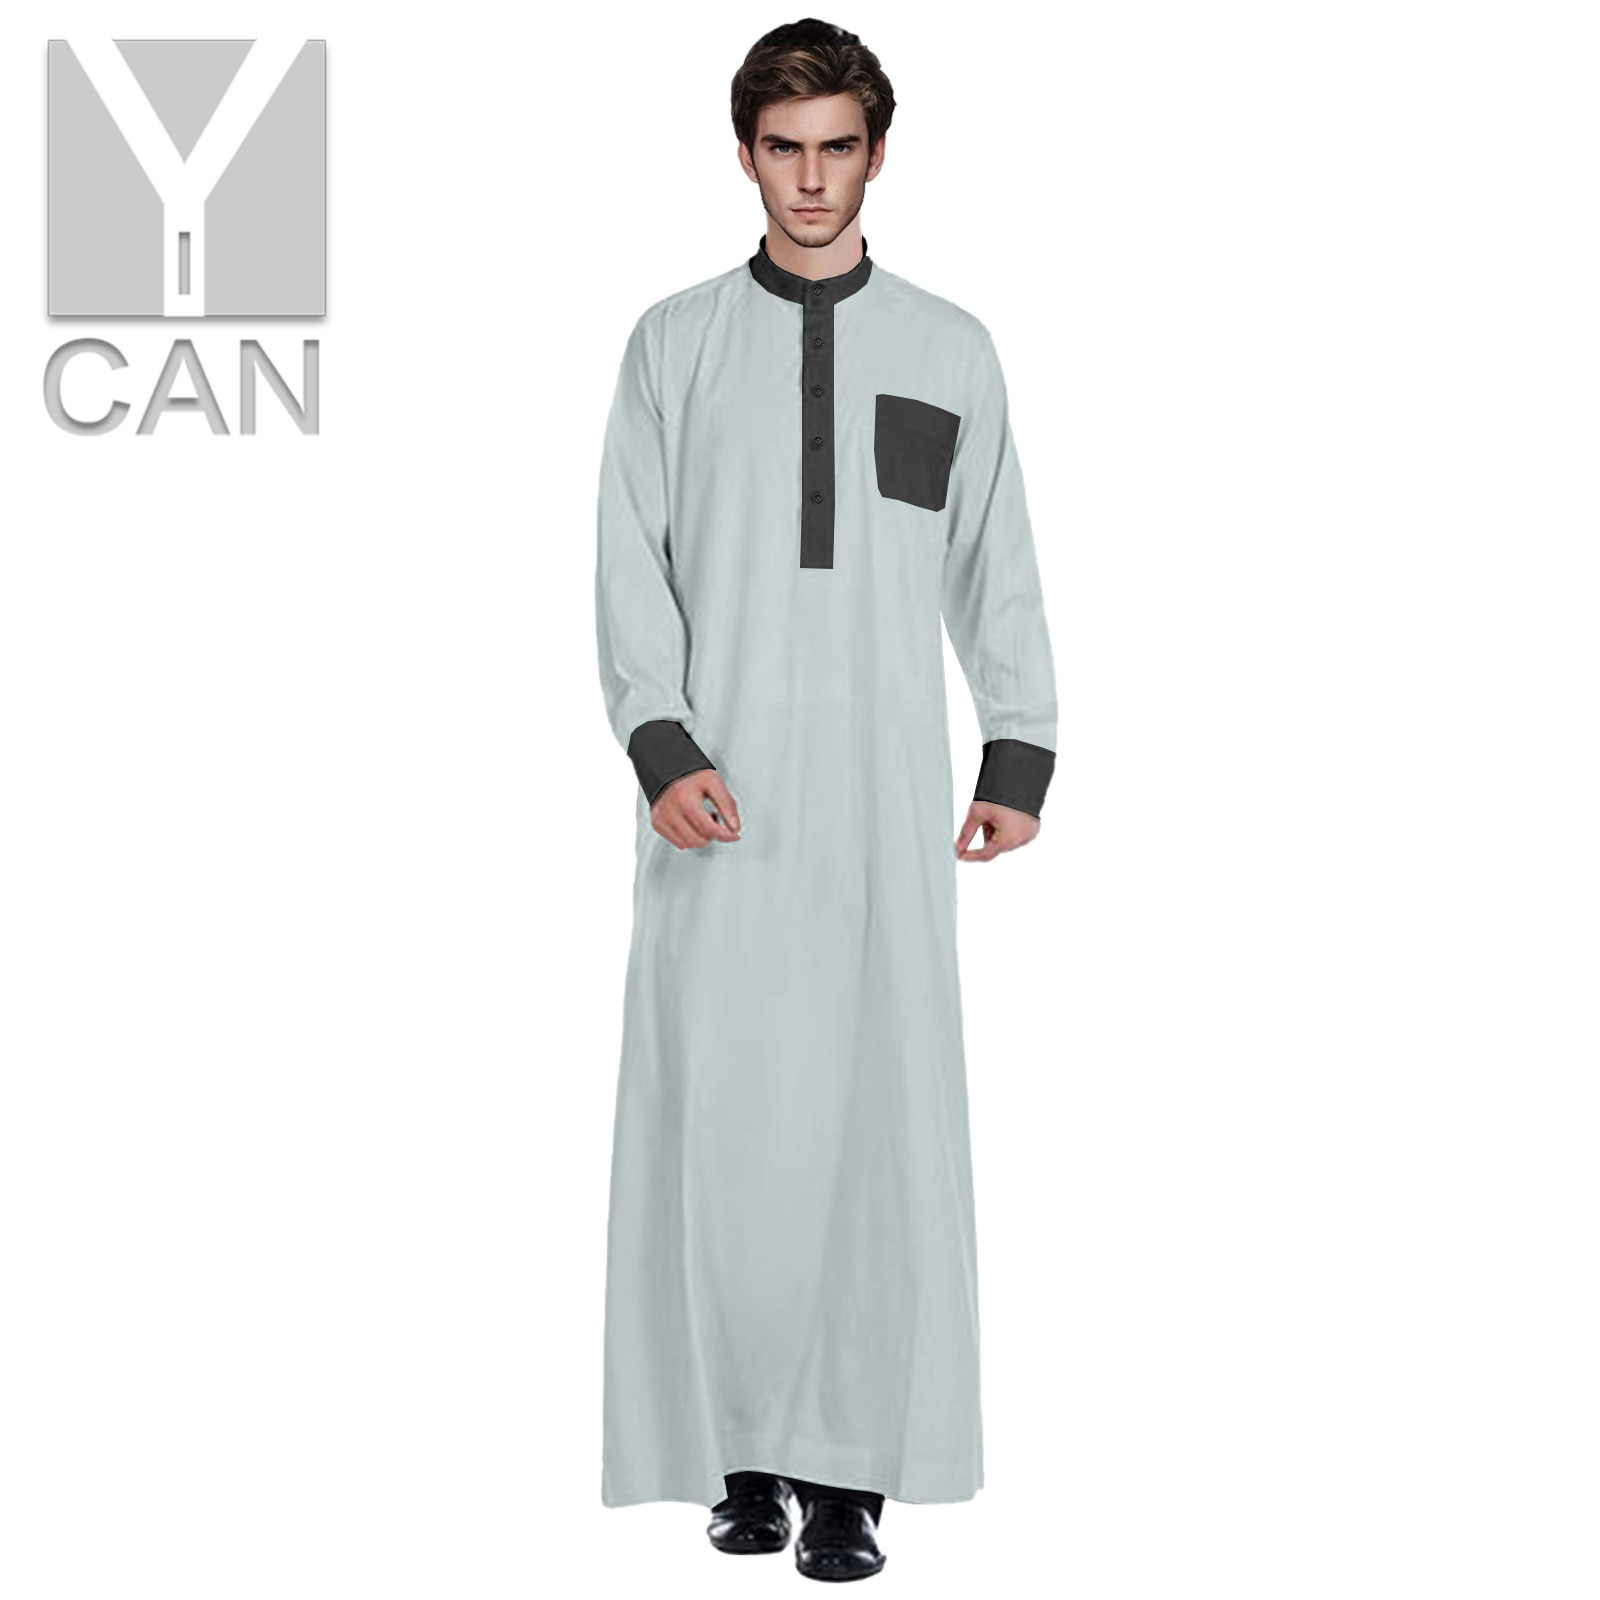 Y-CAN Muslim Fashion for Men Jubba Thobe With Stand Up Collar Contrast Islamic Clothing Pakistan Free Muslim Modal Robe Y211003